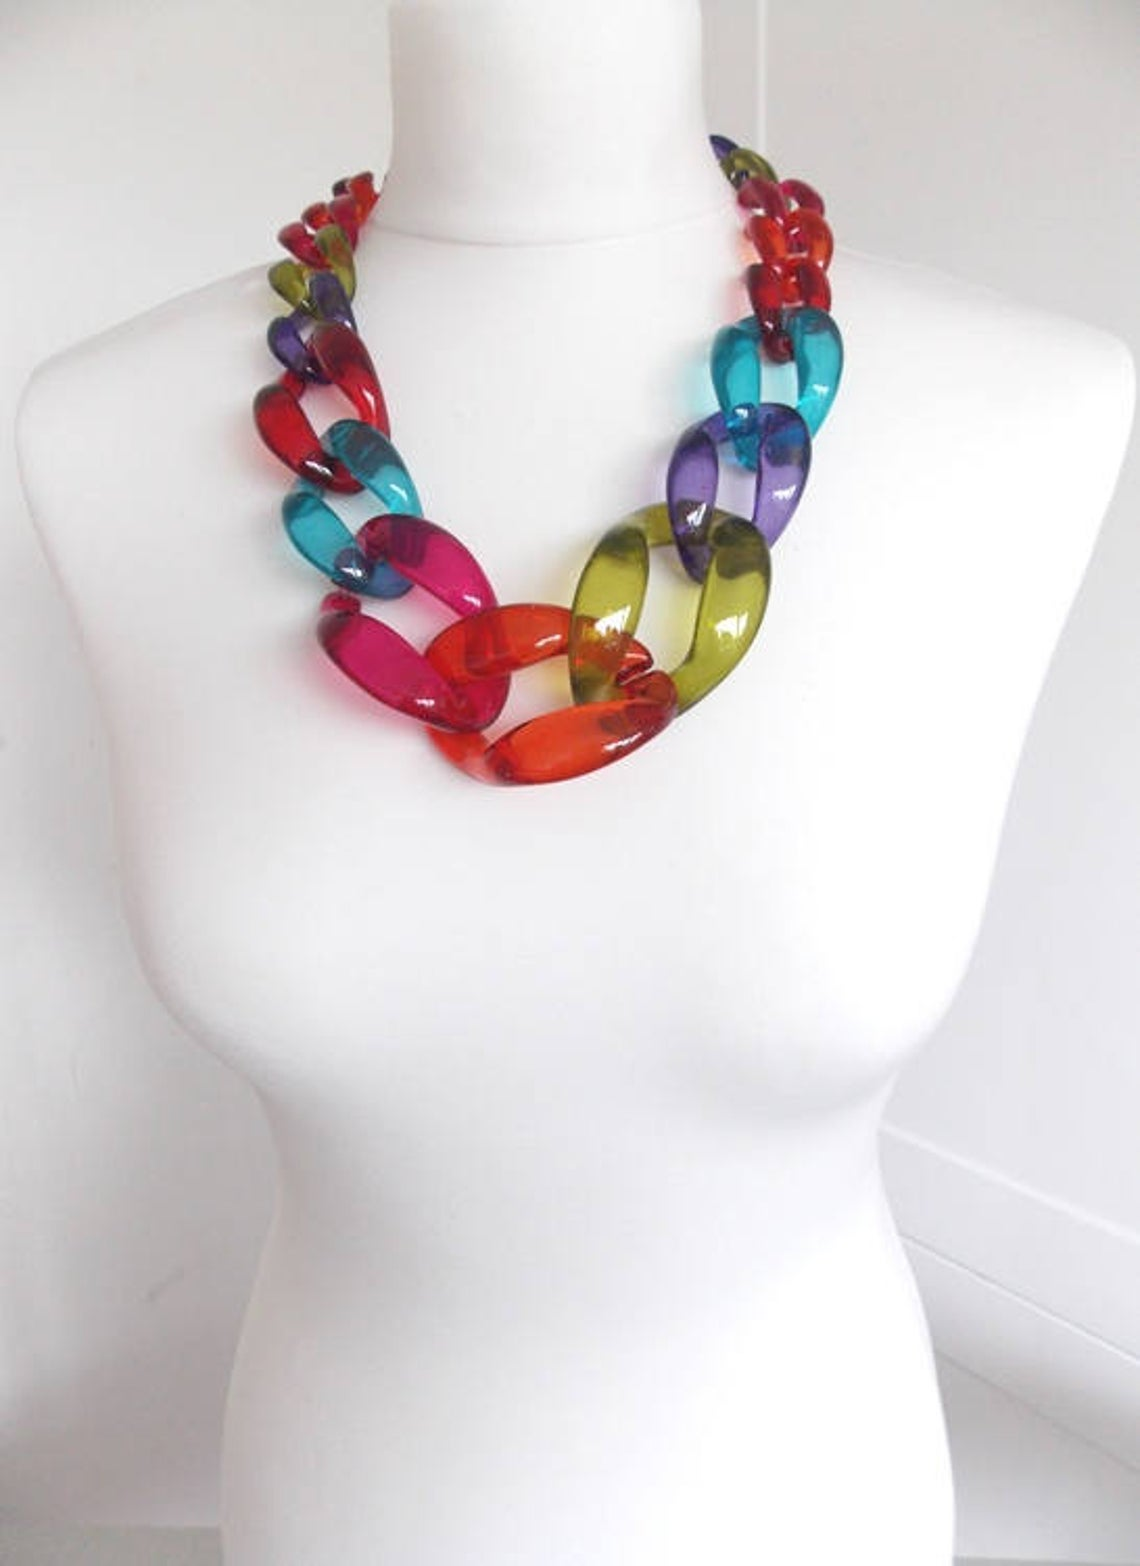 Chunky Multi-Coloured Chain Link Statement Necklace, $48 @etsy.com